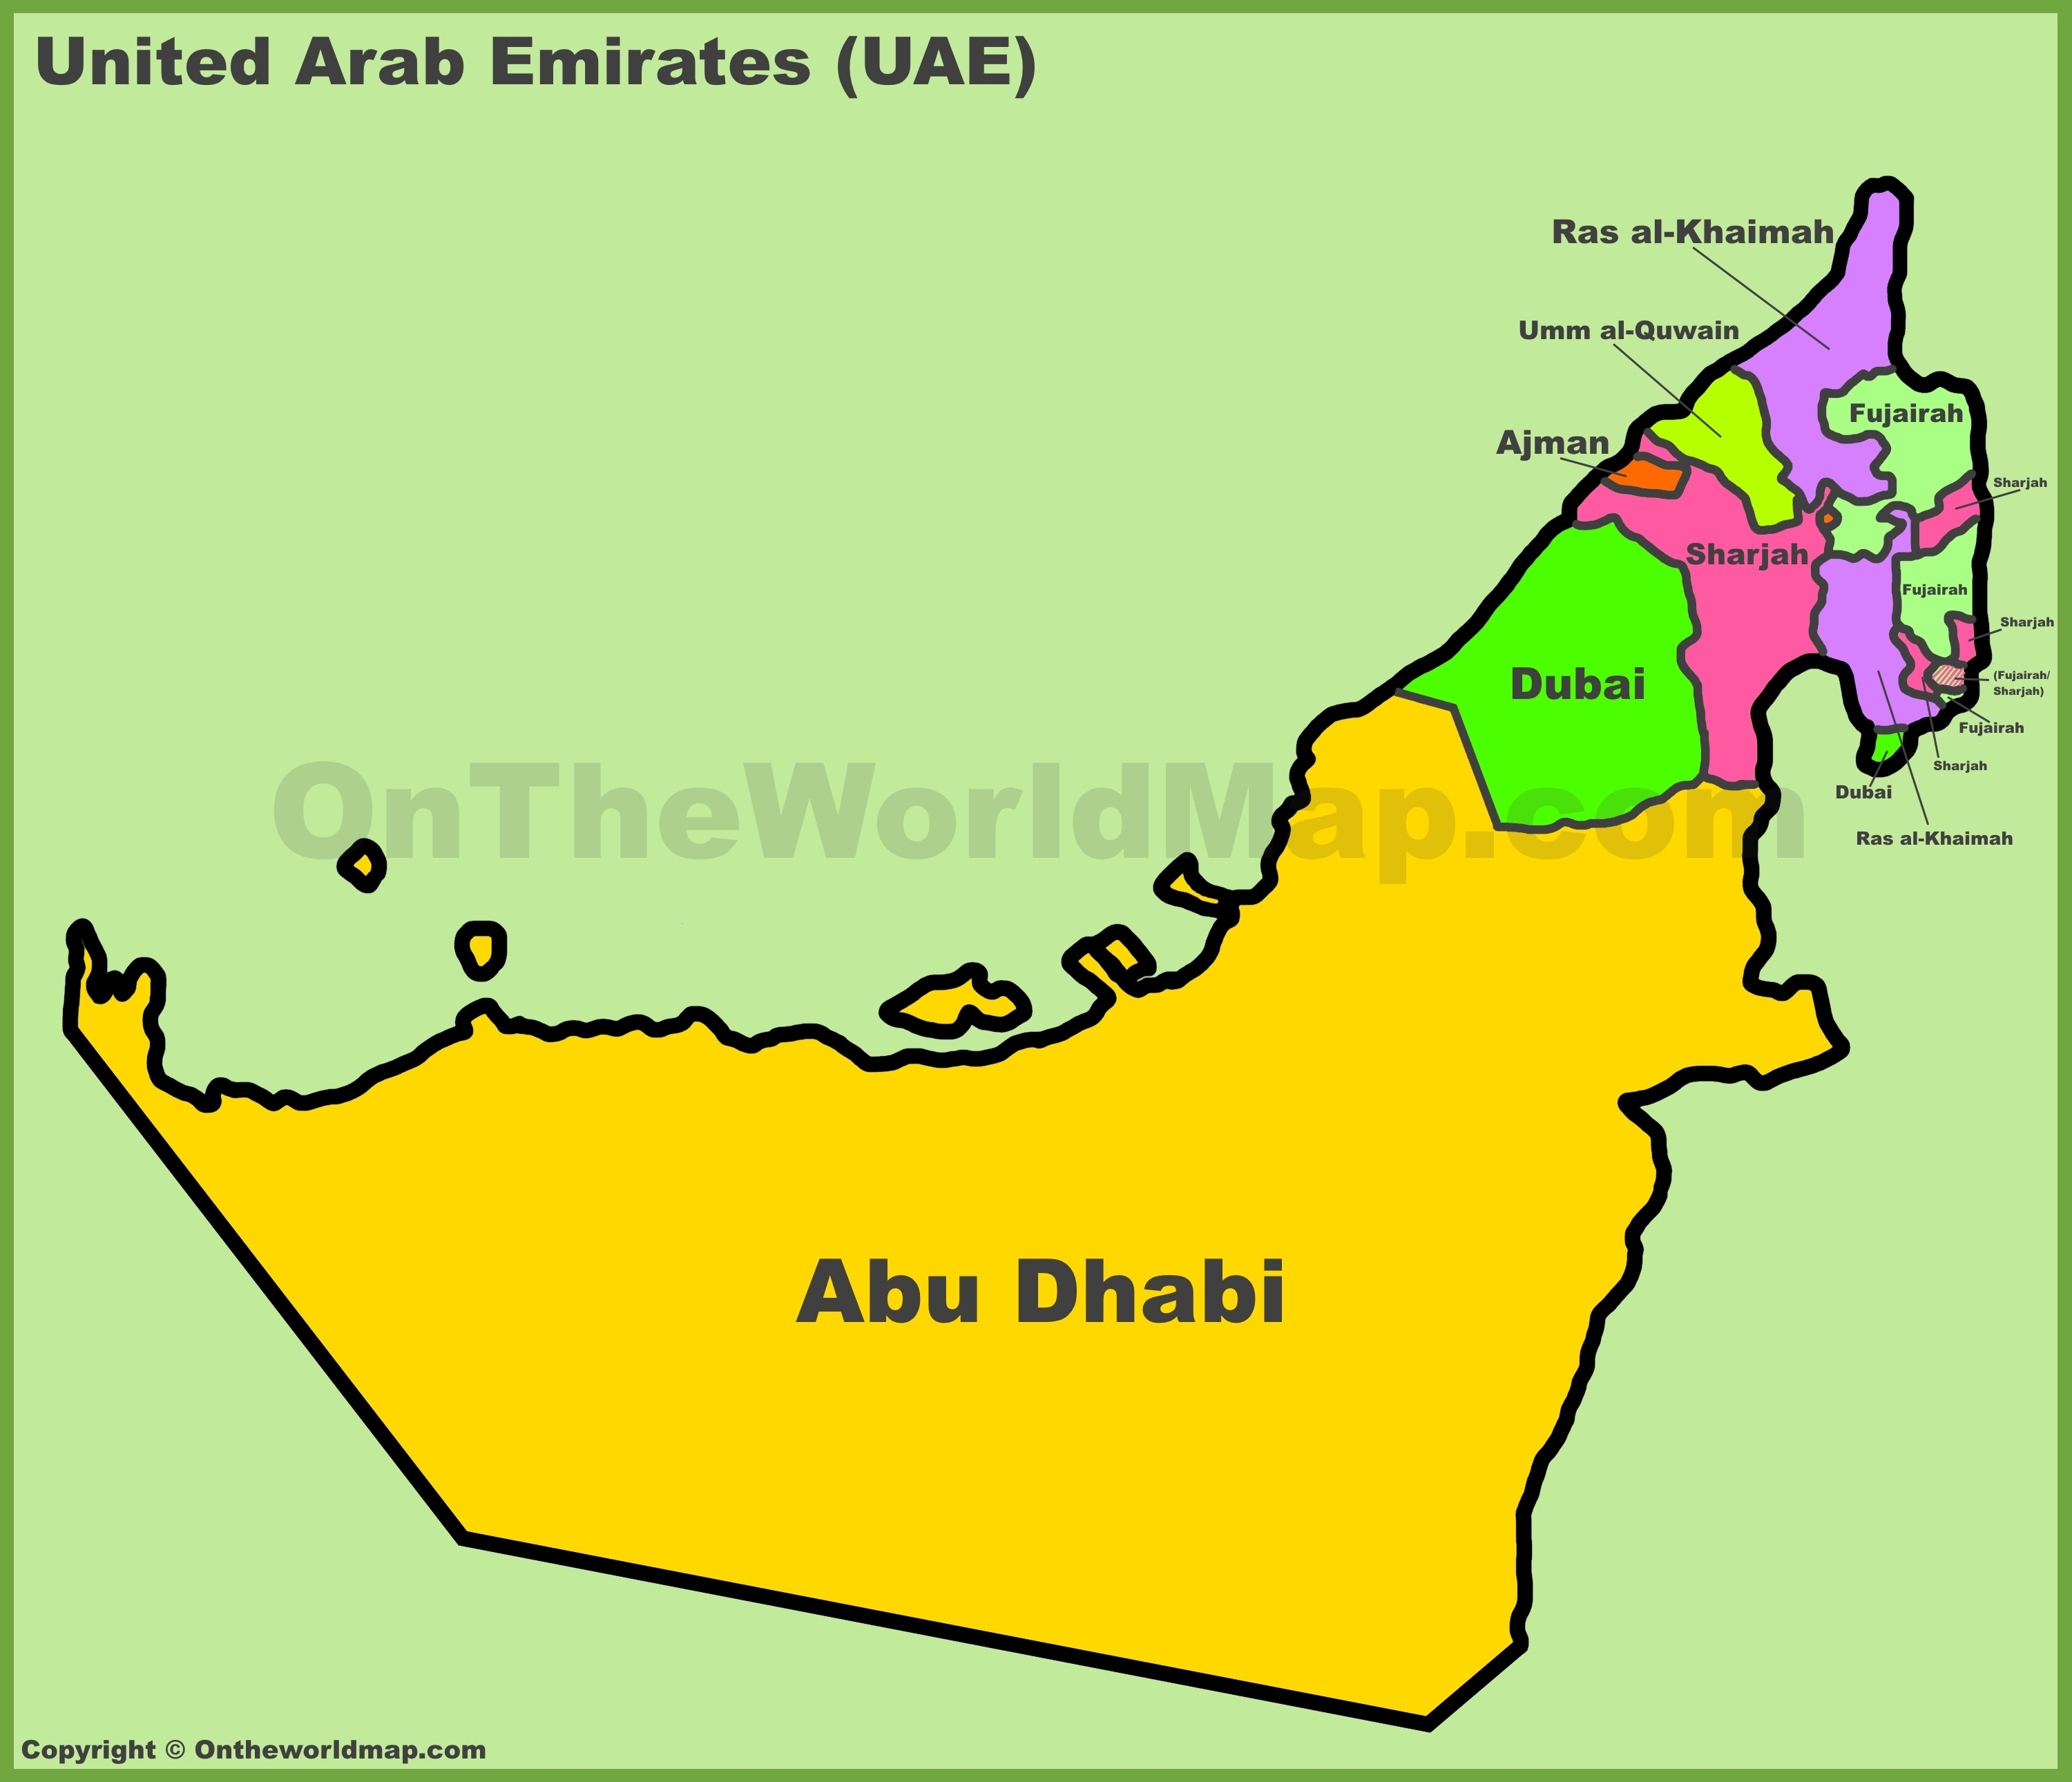 United Arab Emirates Maps  Maps of UAE United Arab Emirates